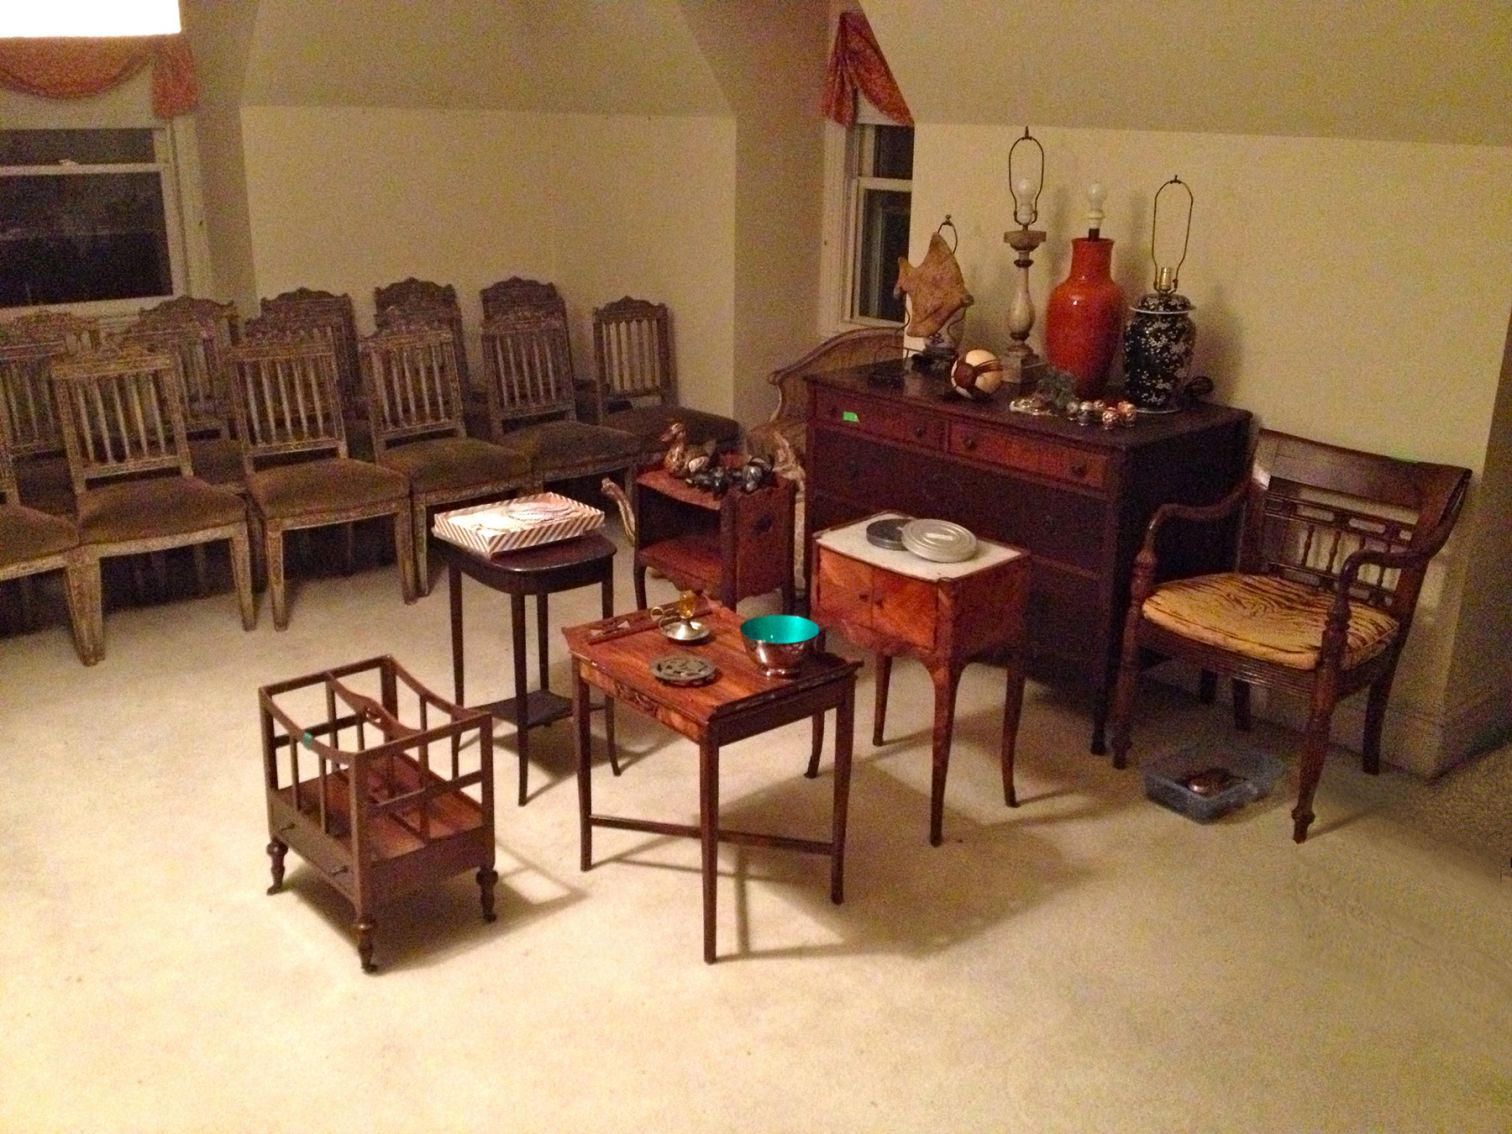 Family Furnishings Inventoried and Organized